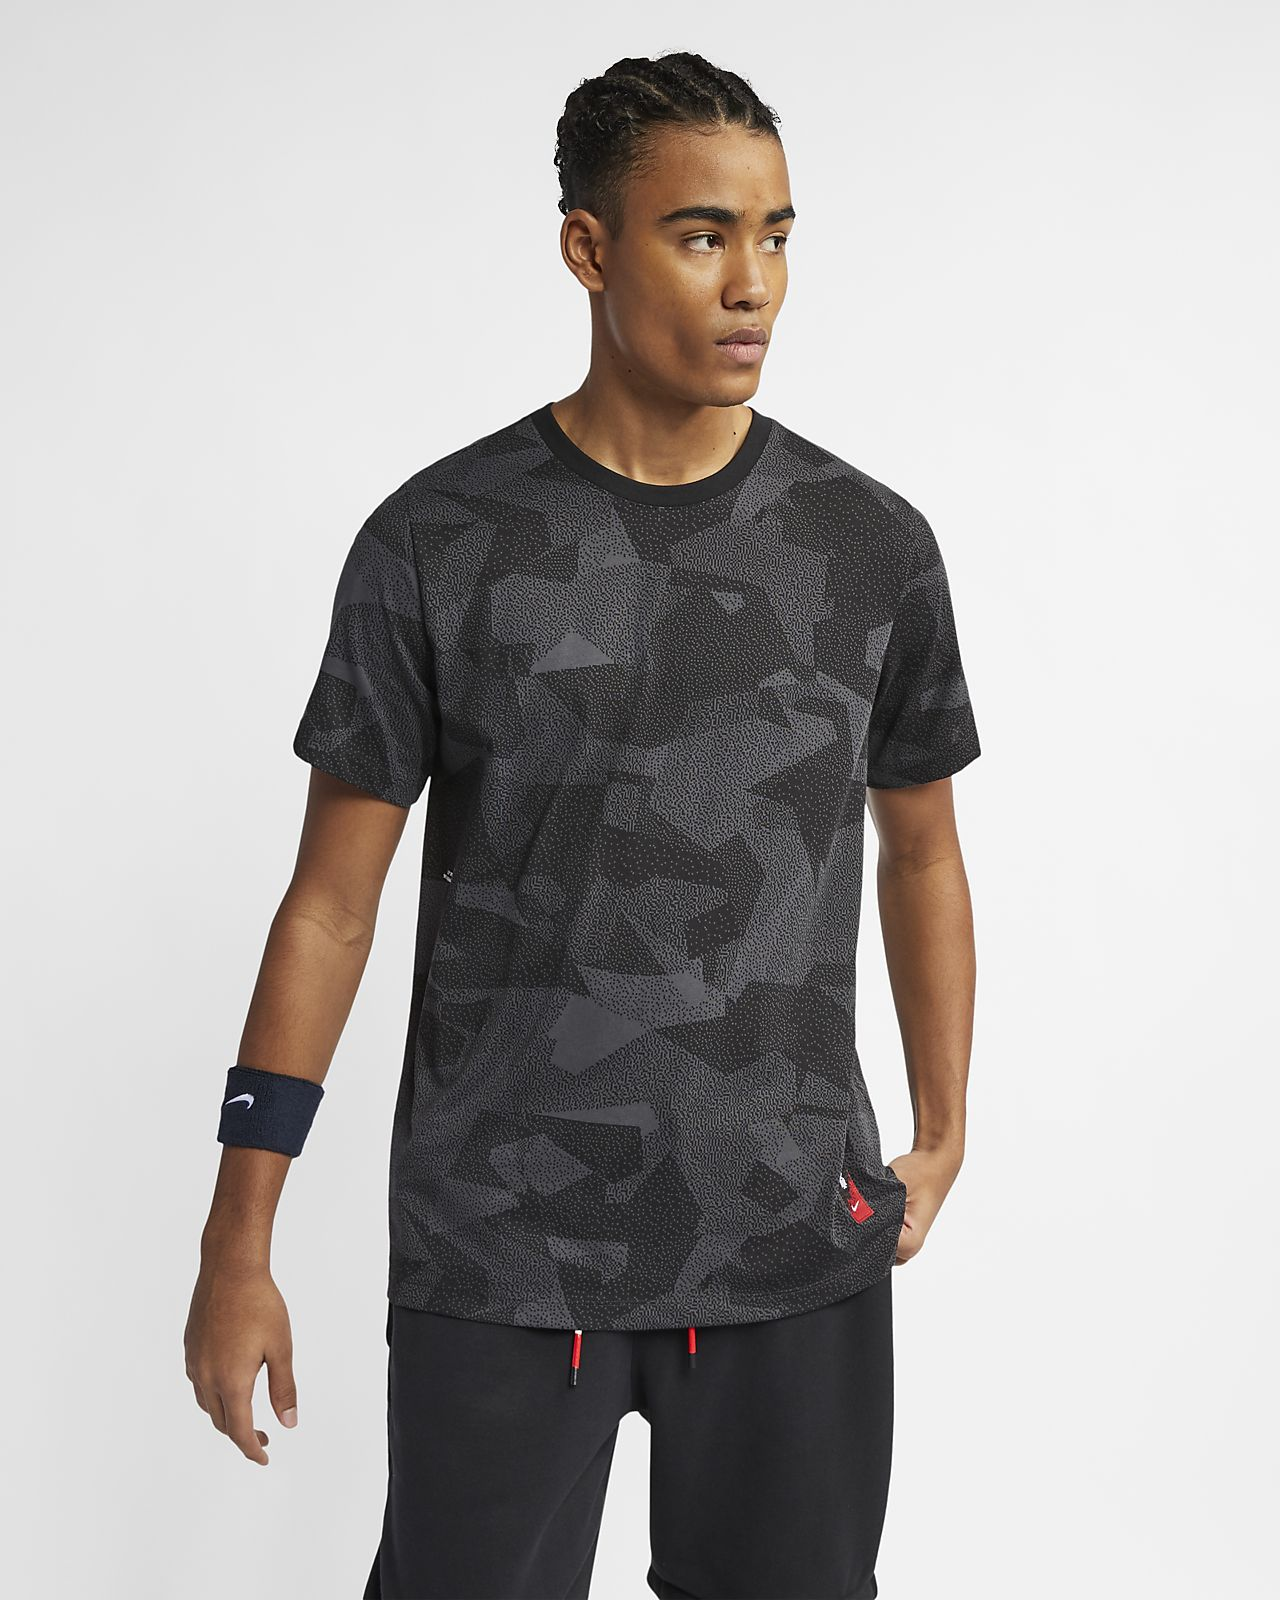 Nike Dri-FIT Kyrie Men's T-Shirt